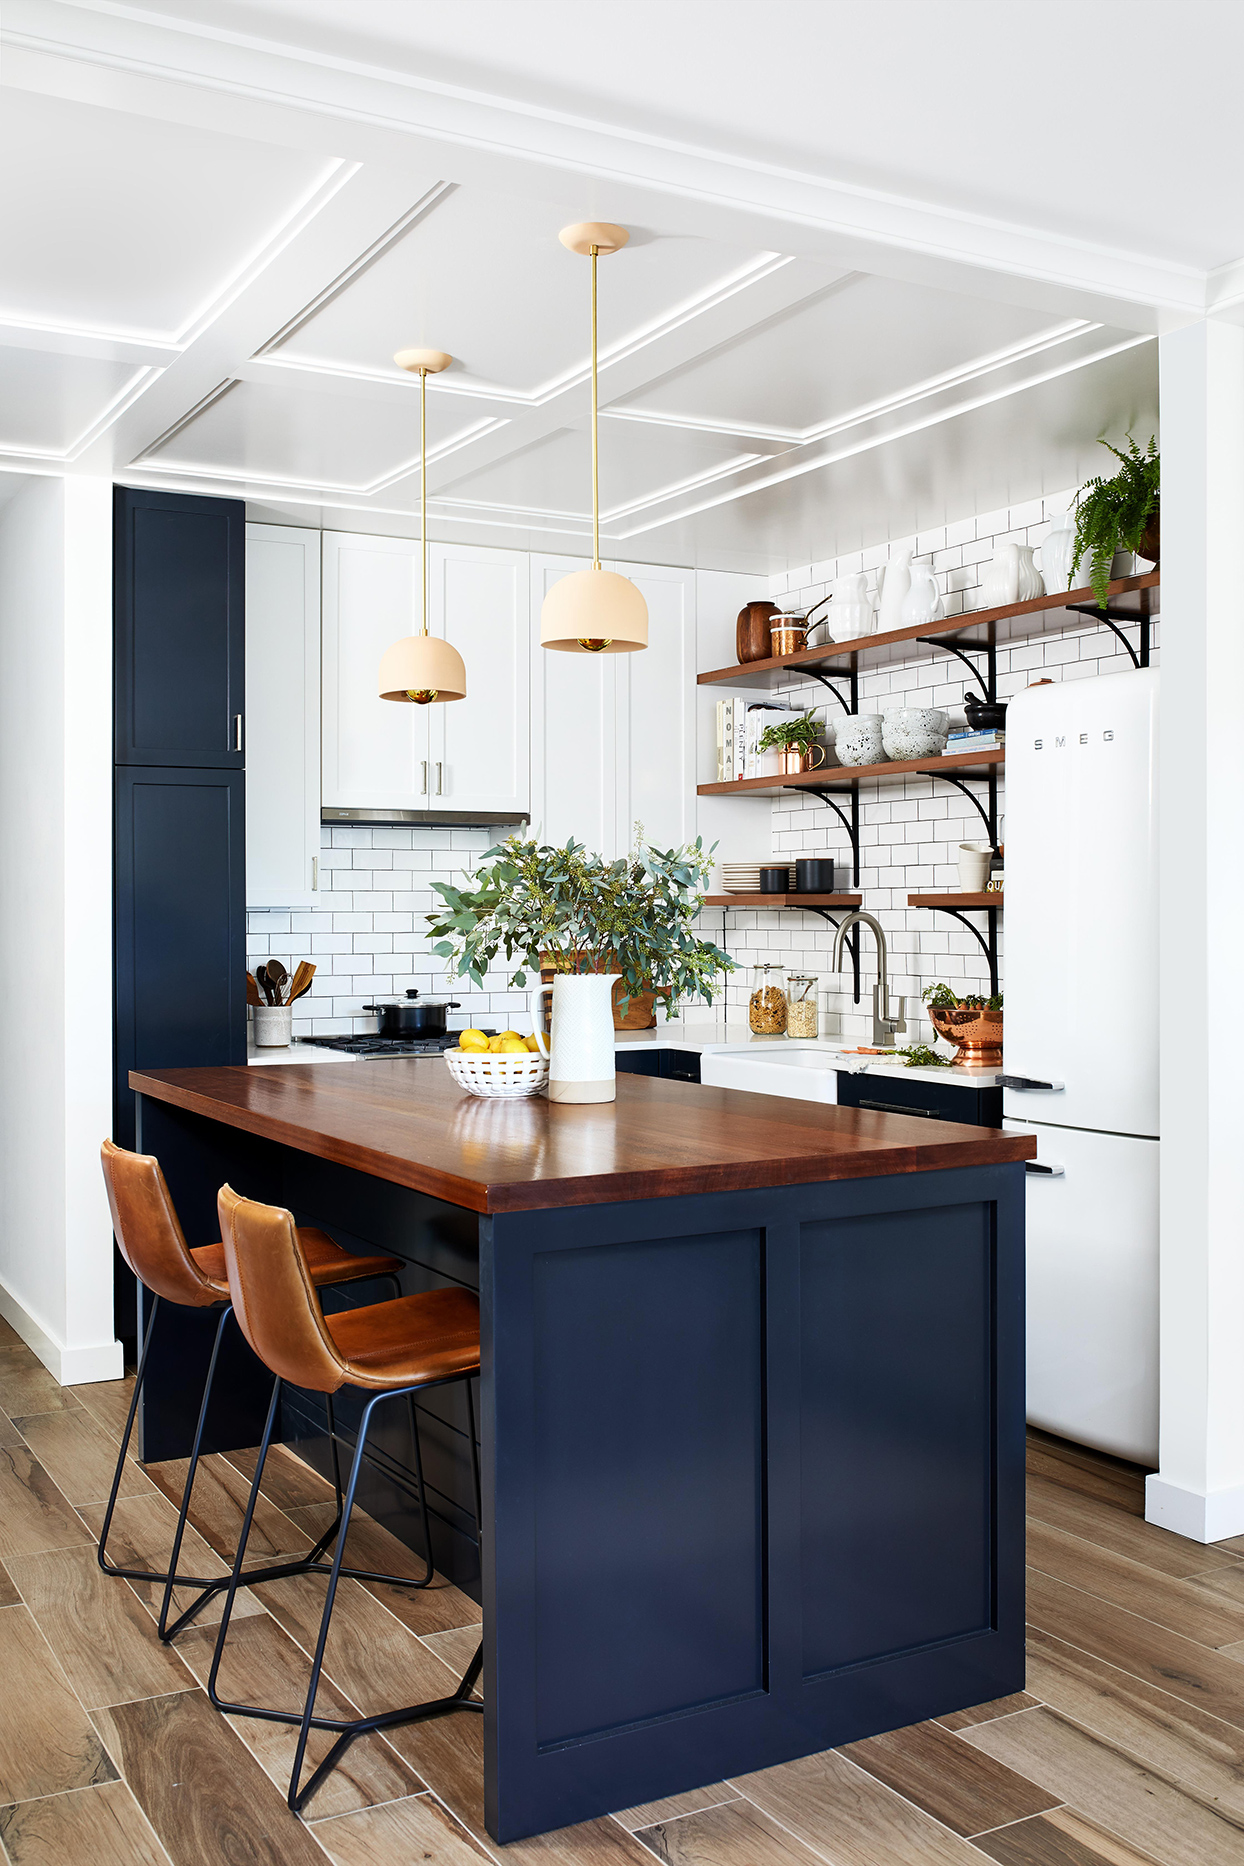 white kitchen with dark blue and wood accents